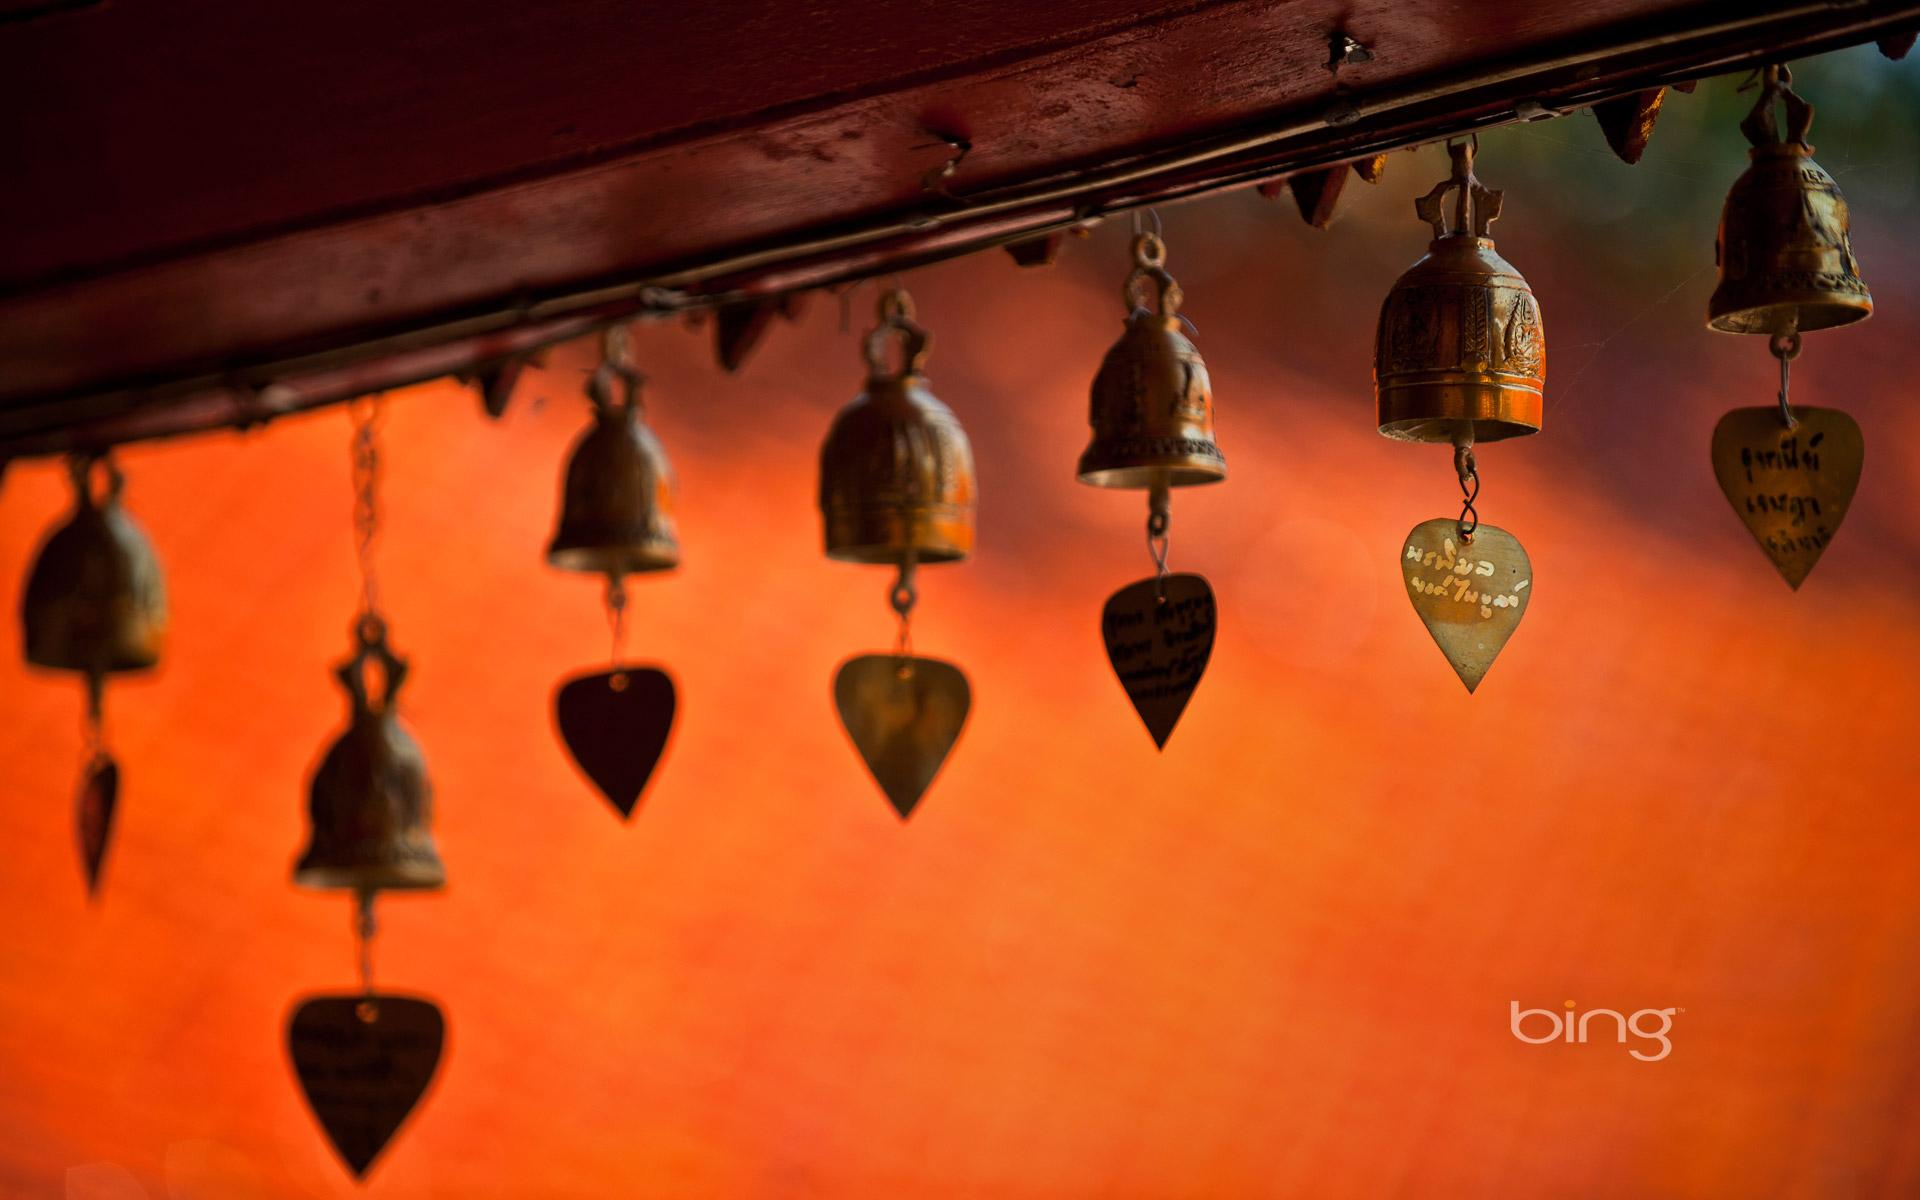 Temple bells and chimes, Chiang Mai, Thailand